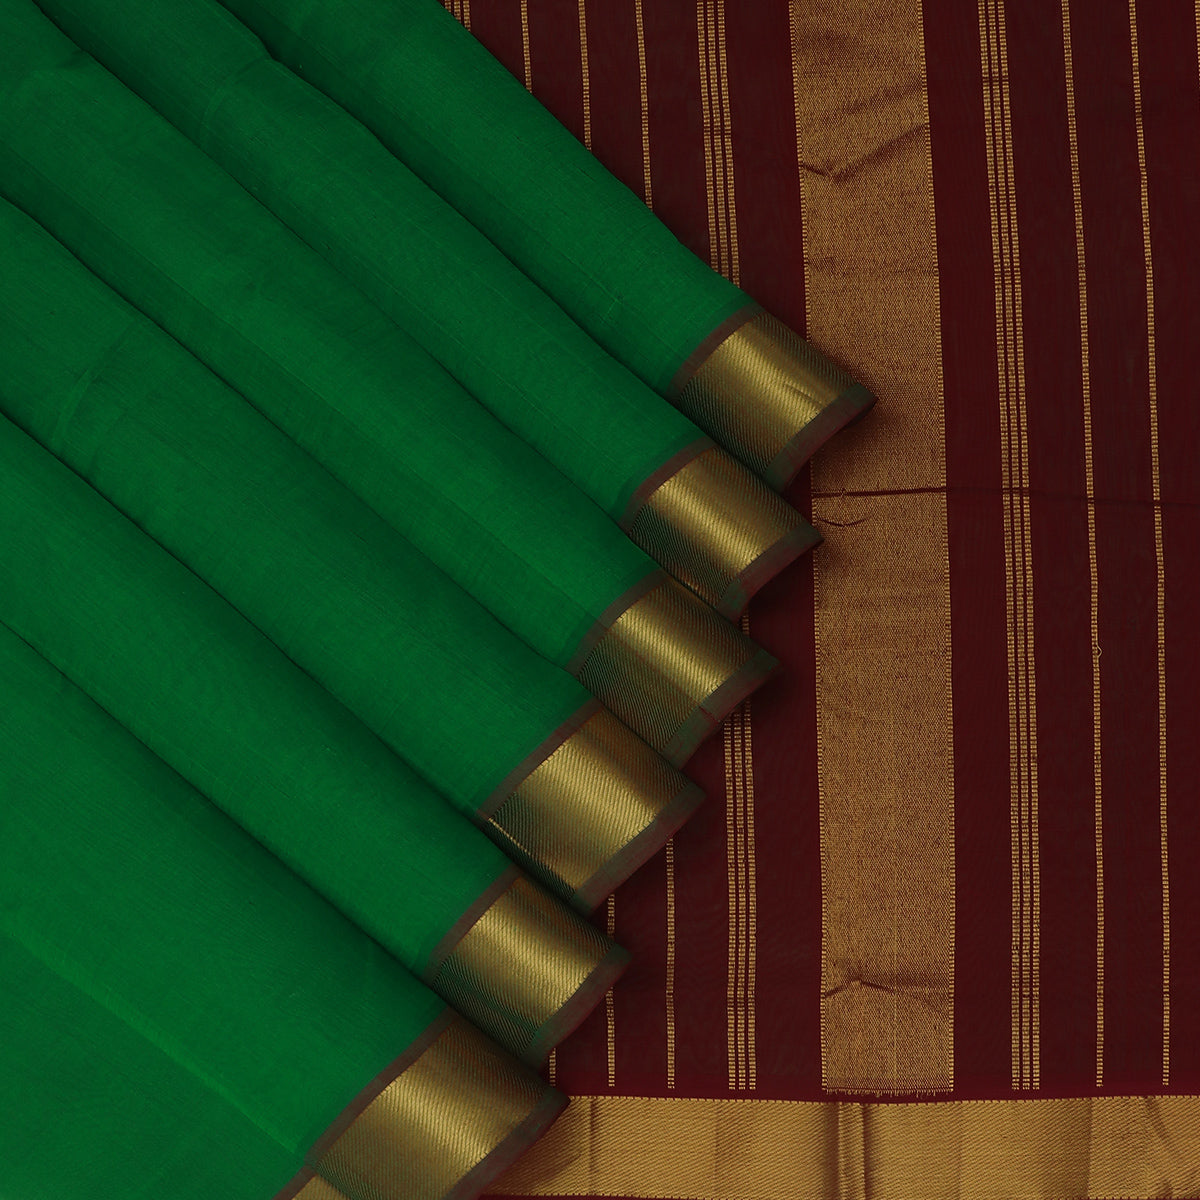 Silk Cotton Saree Green and Maroon with Zari border 9 yards